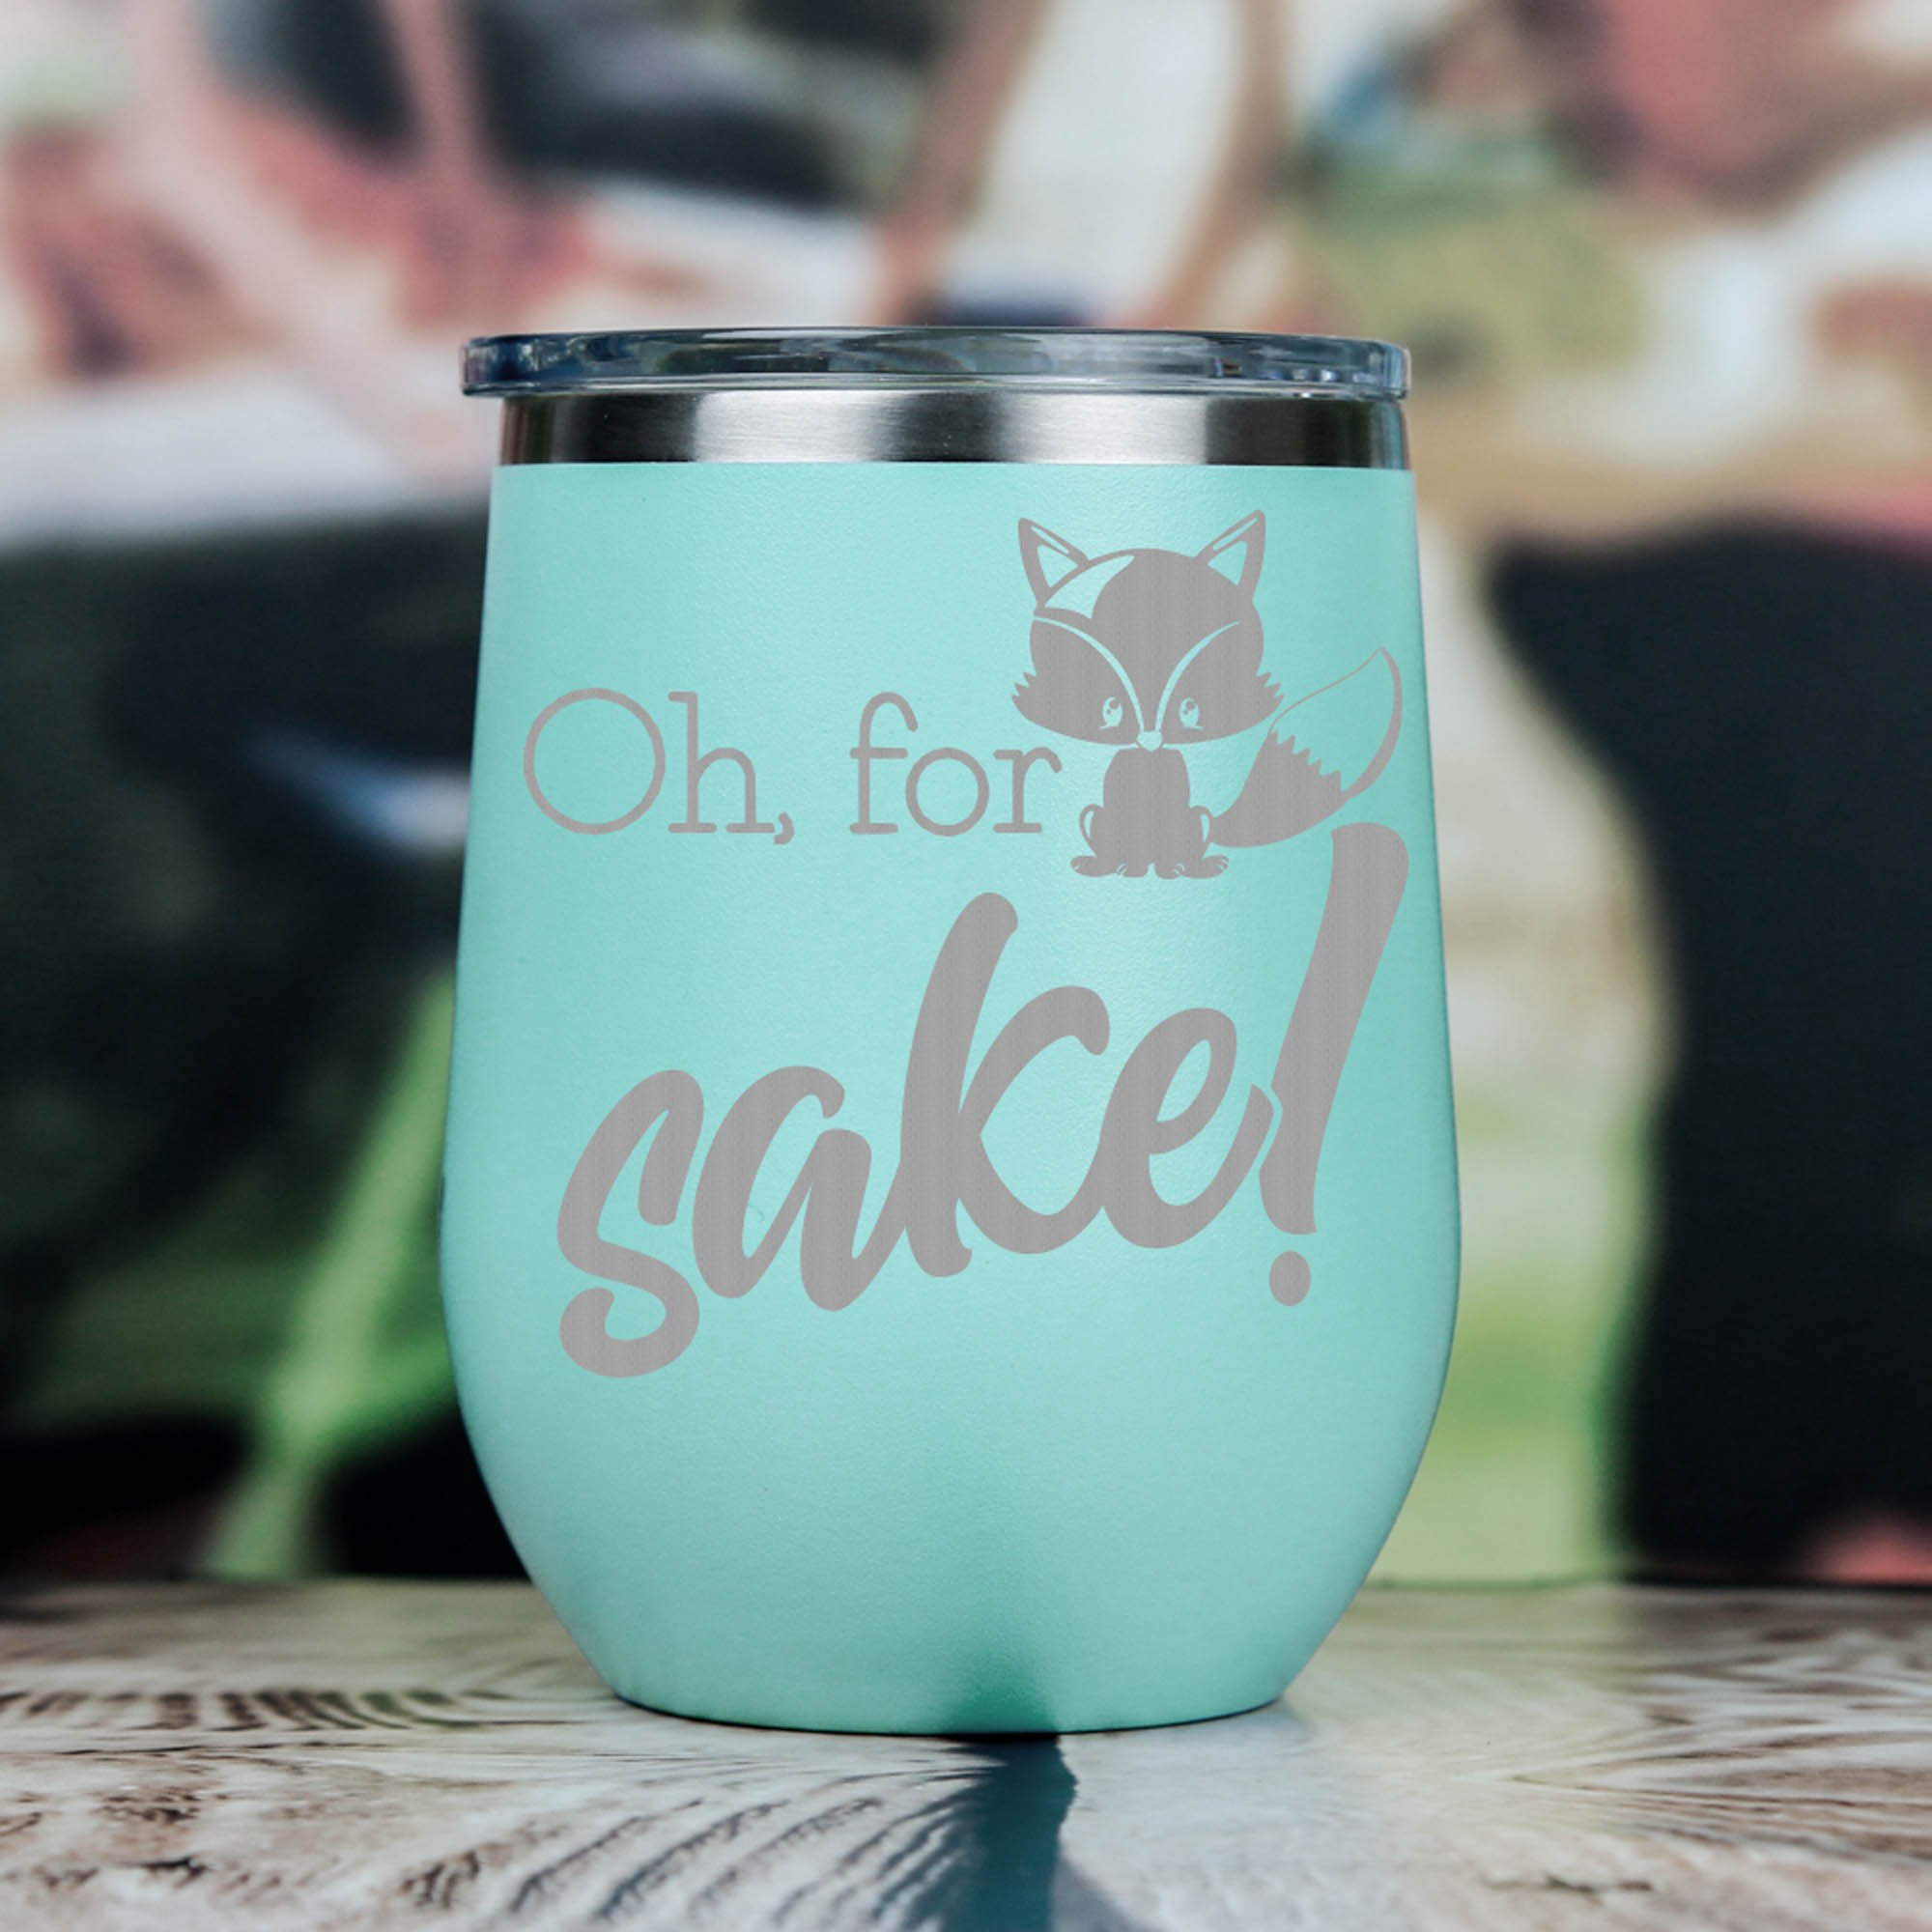 Oh For Fox Sake White Stainless Steel Wine Tumbler 12 oz with Lid Funny Wine Lover Gift